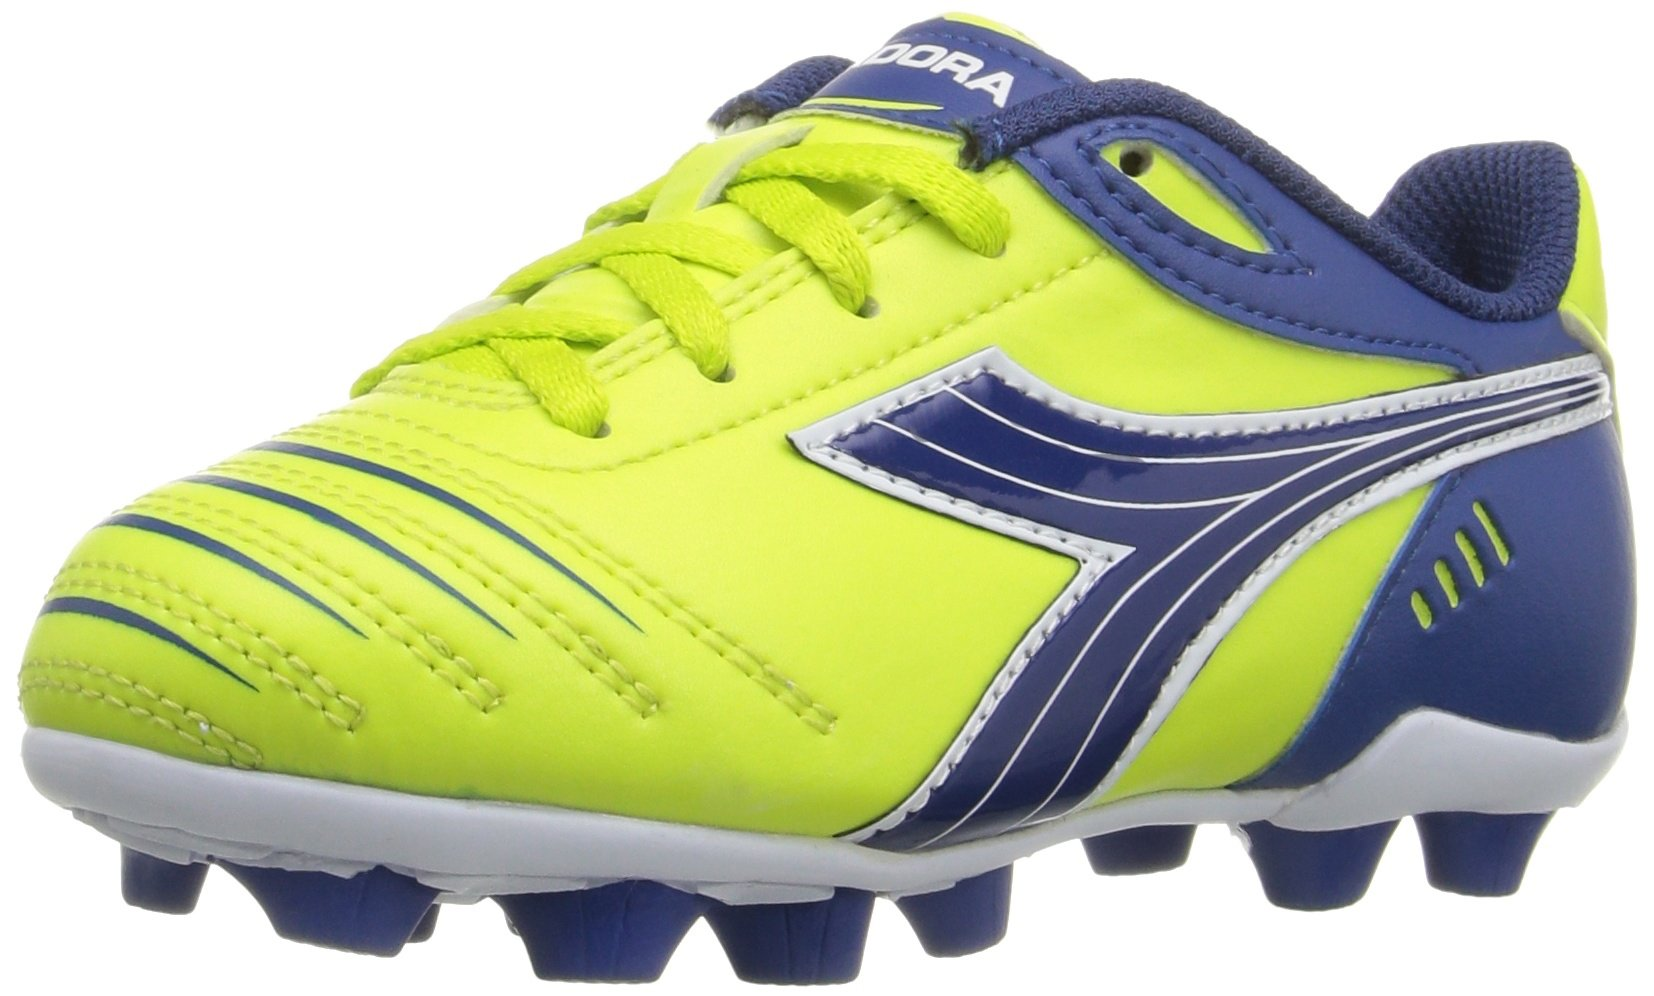 Diadora Kids' Cattura MD Jr Soccer Shoe, Lime Green/Dark Royal, 13 M US Little Kid